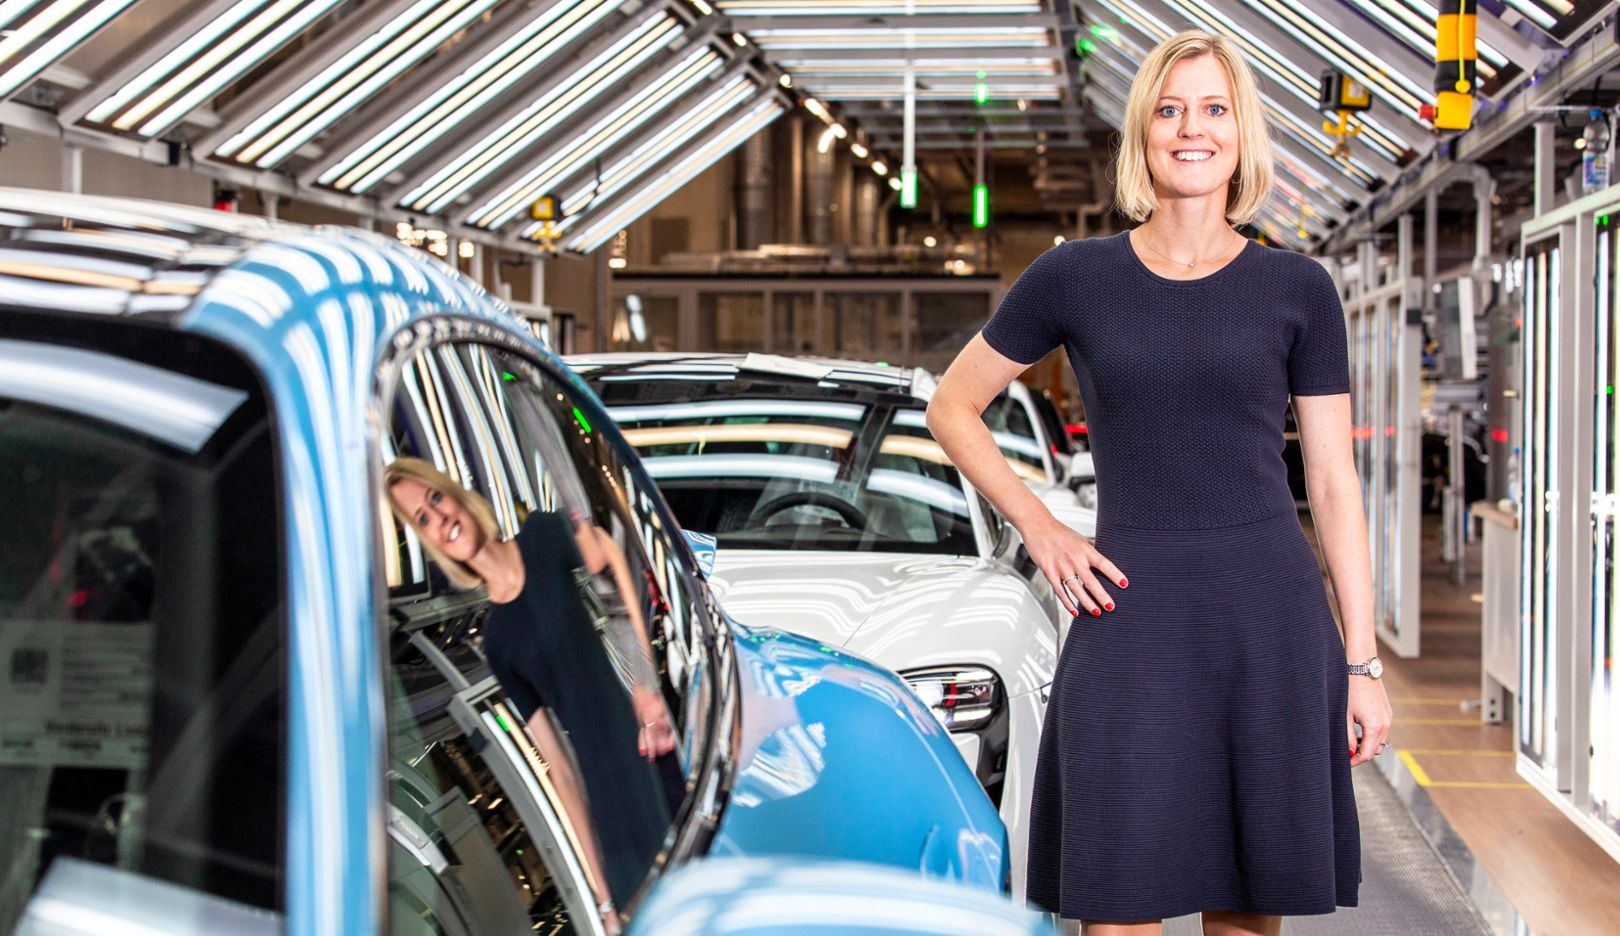 Kerstin Hess, director of the department for financial strategy and organization, 2020, Porsche AG